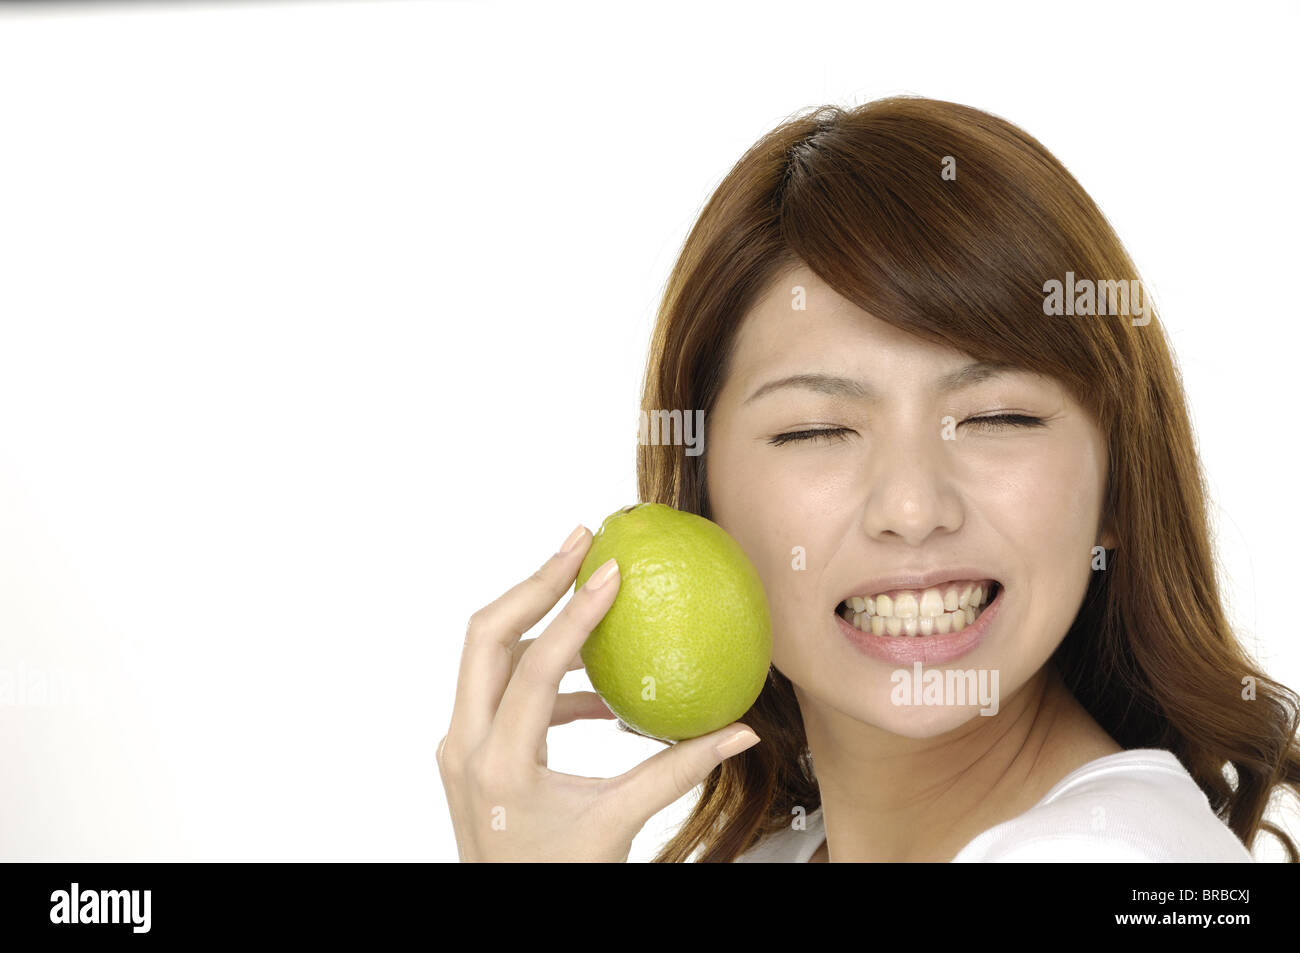 A woman with a lime. The sour flavor of the lime made her make a funny face Stock Photo